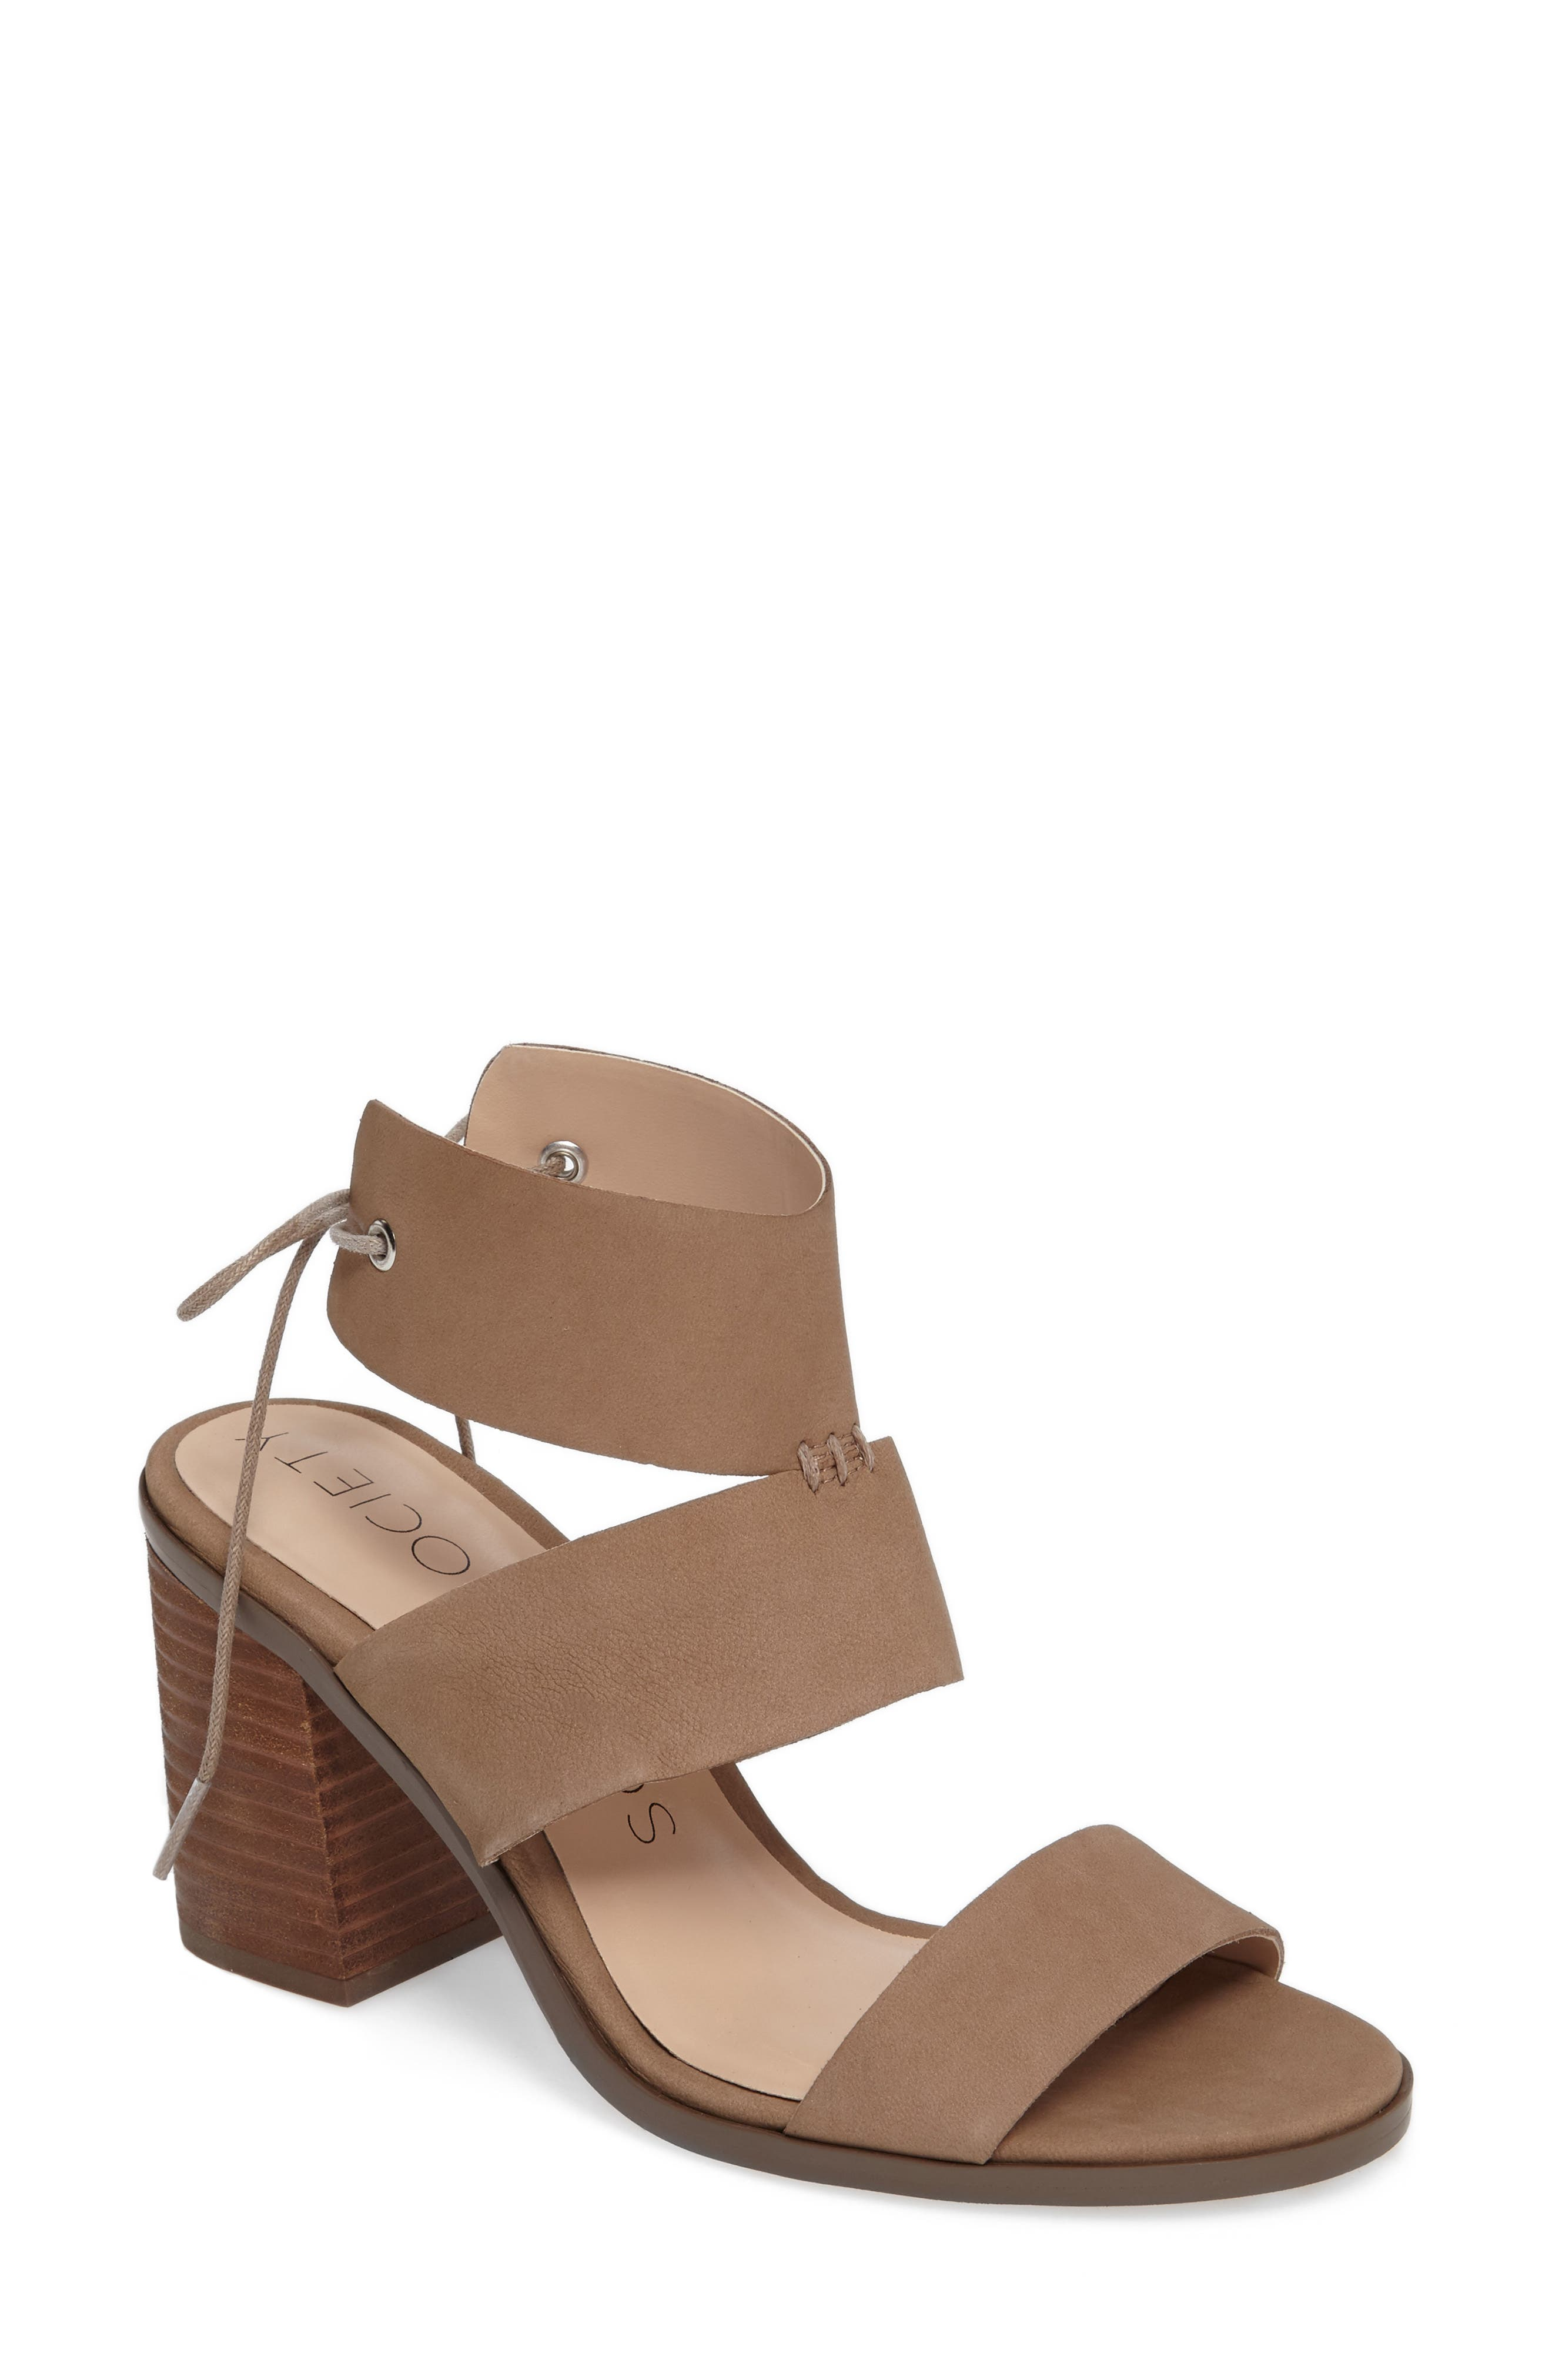 Main Image - Sole Society Hayden Sandal (Women)